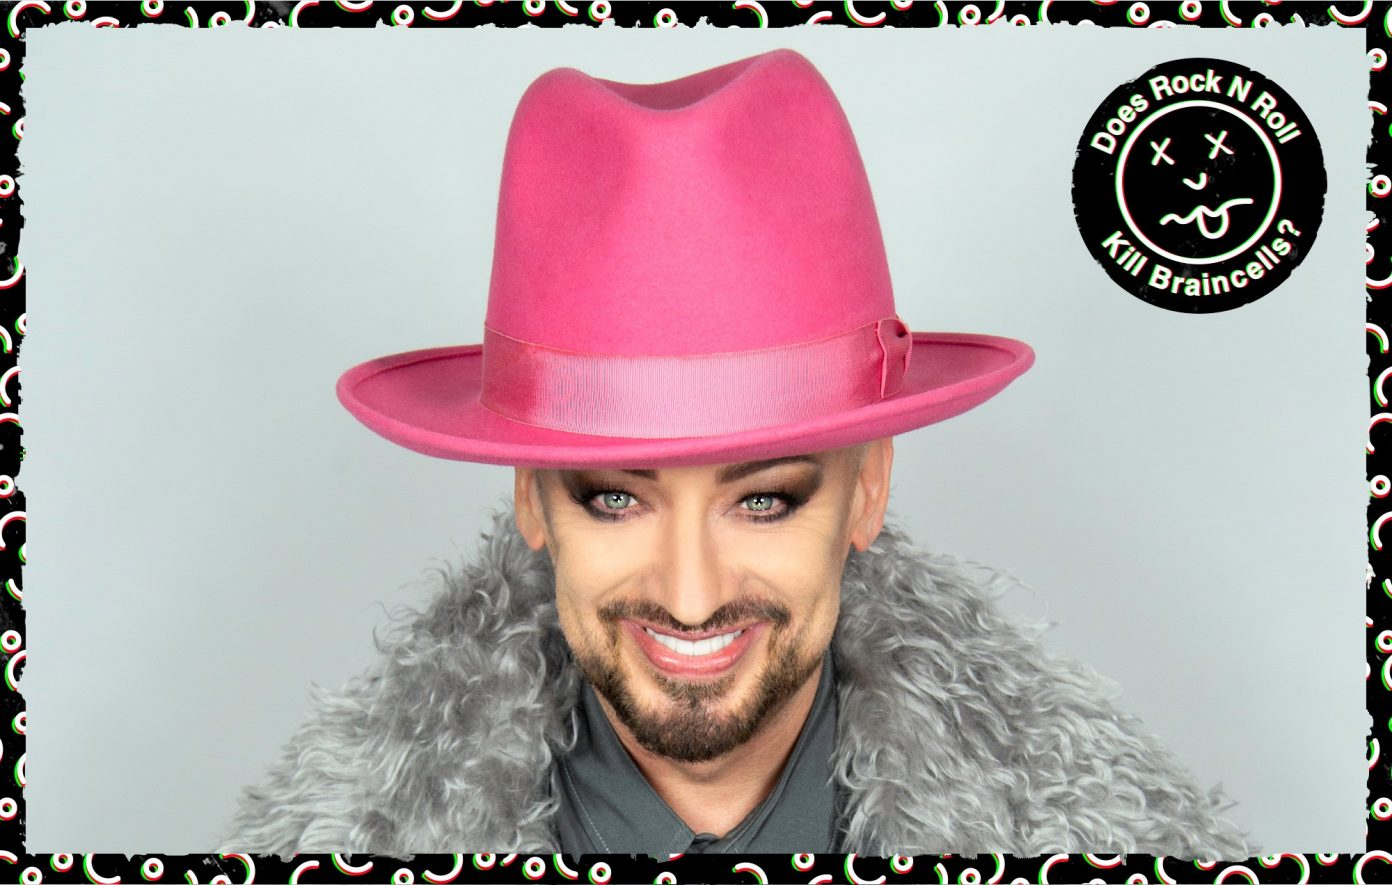 Boy-George-Nov-2020-by-Dean-Stockings-02USE--1392x885.jpg